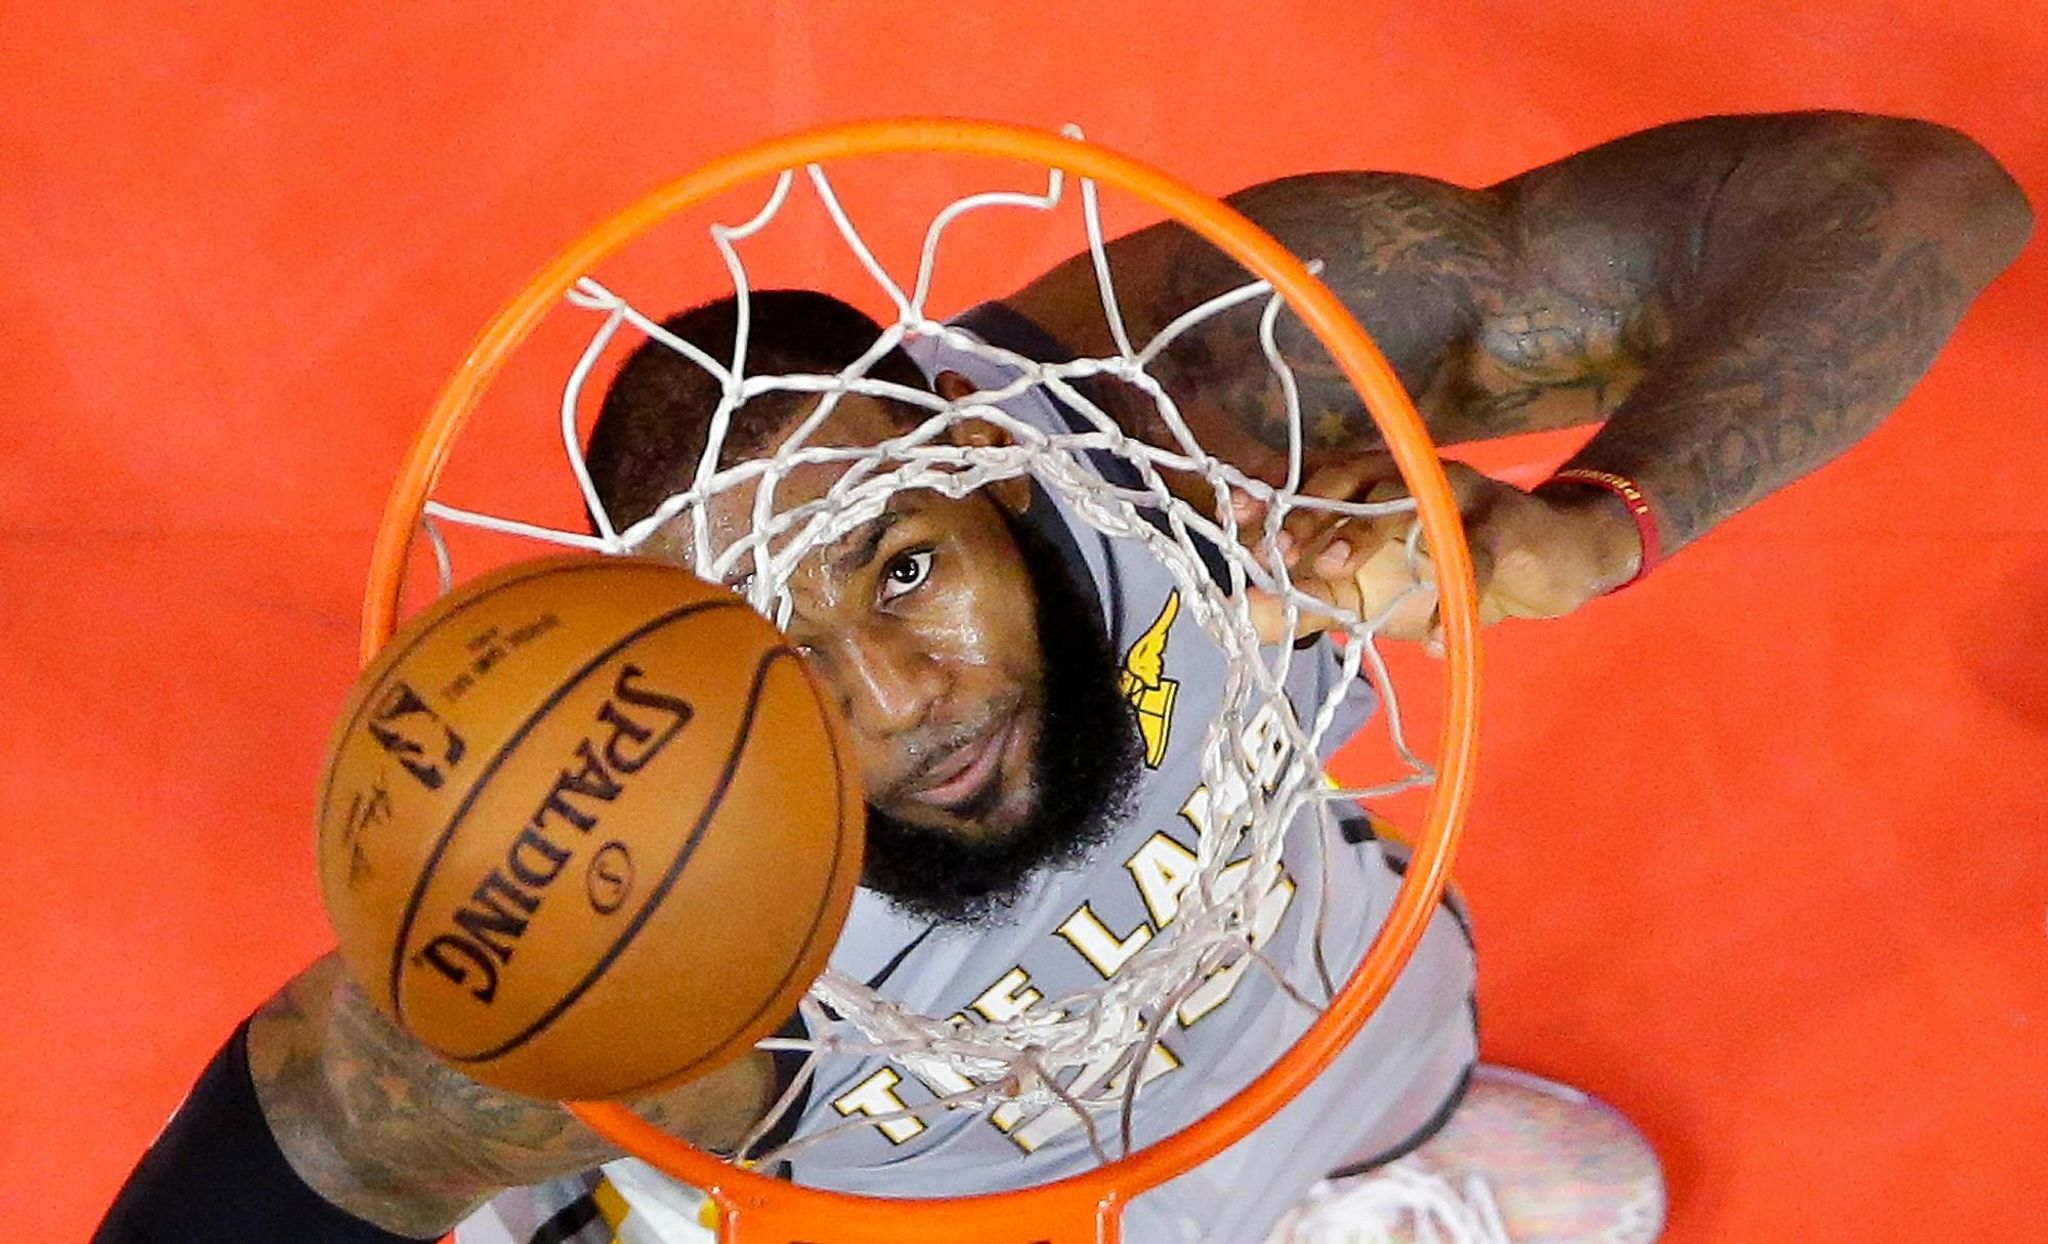 Box out: LeBron has knack for first-round playoff knockouts